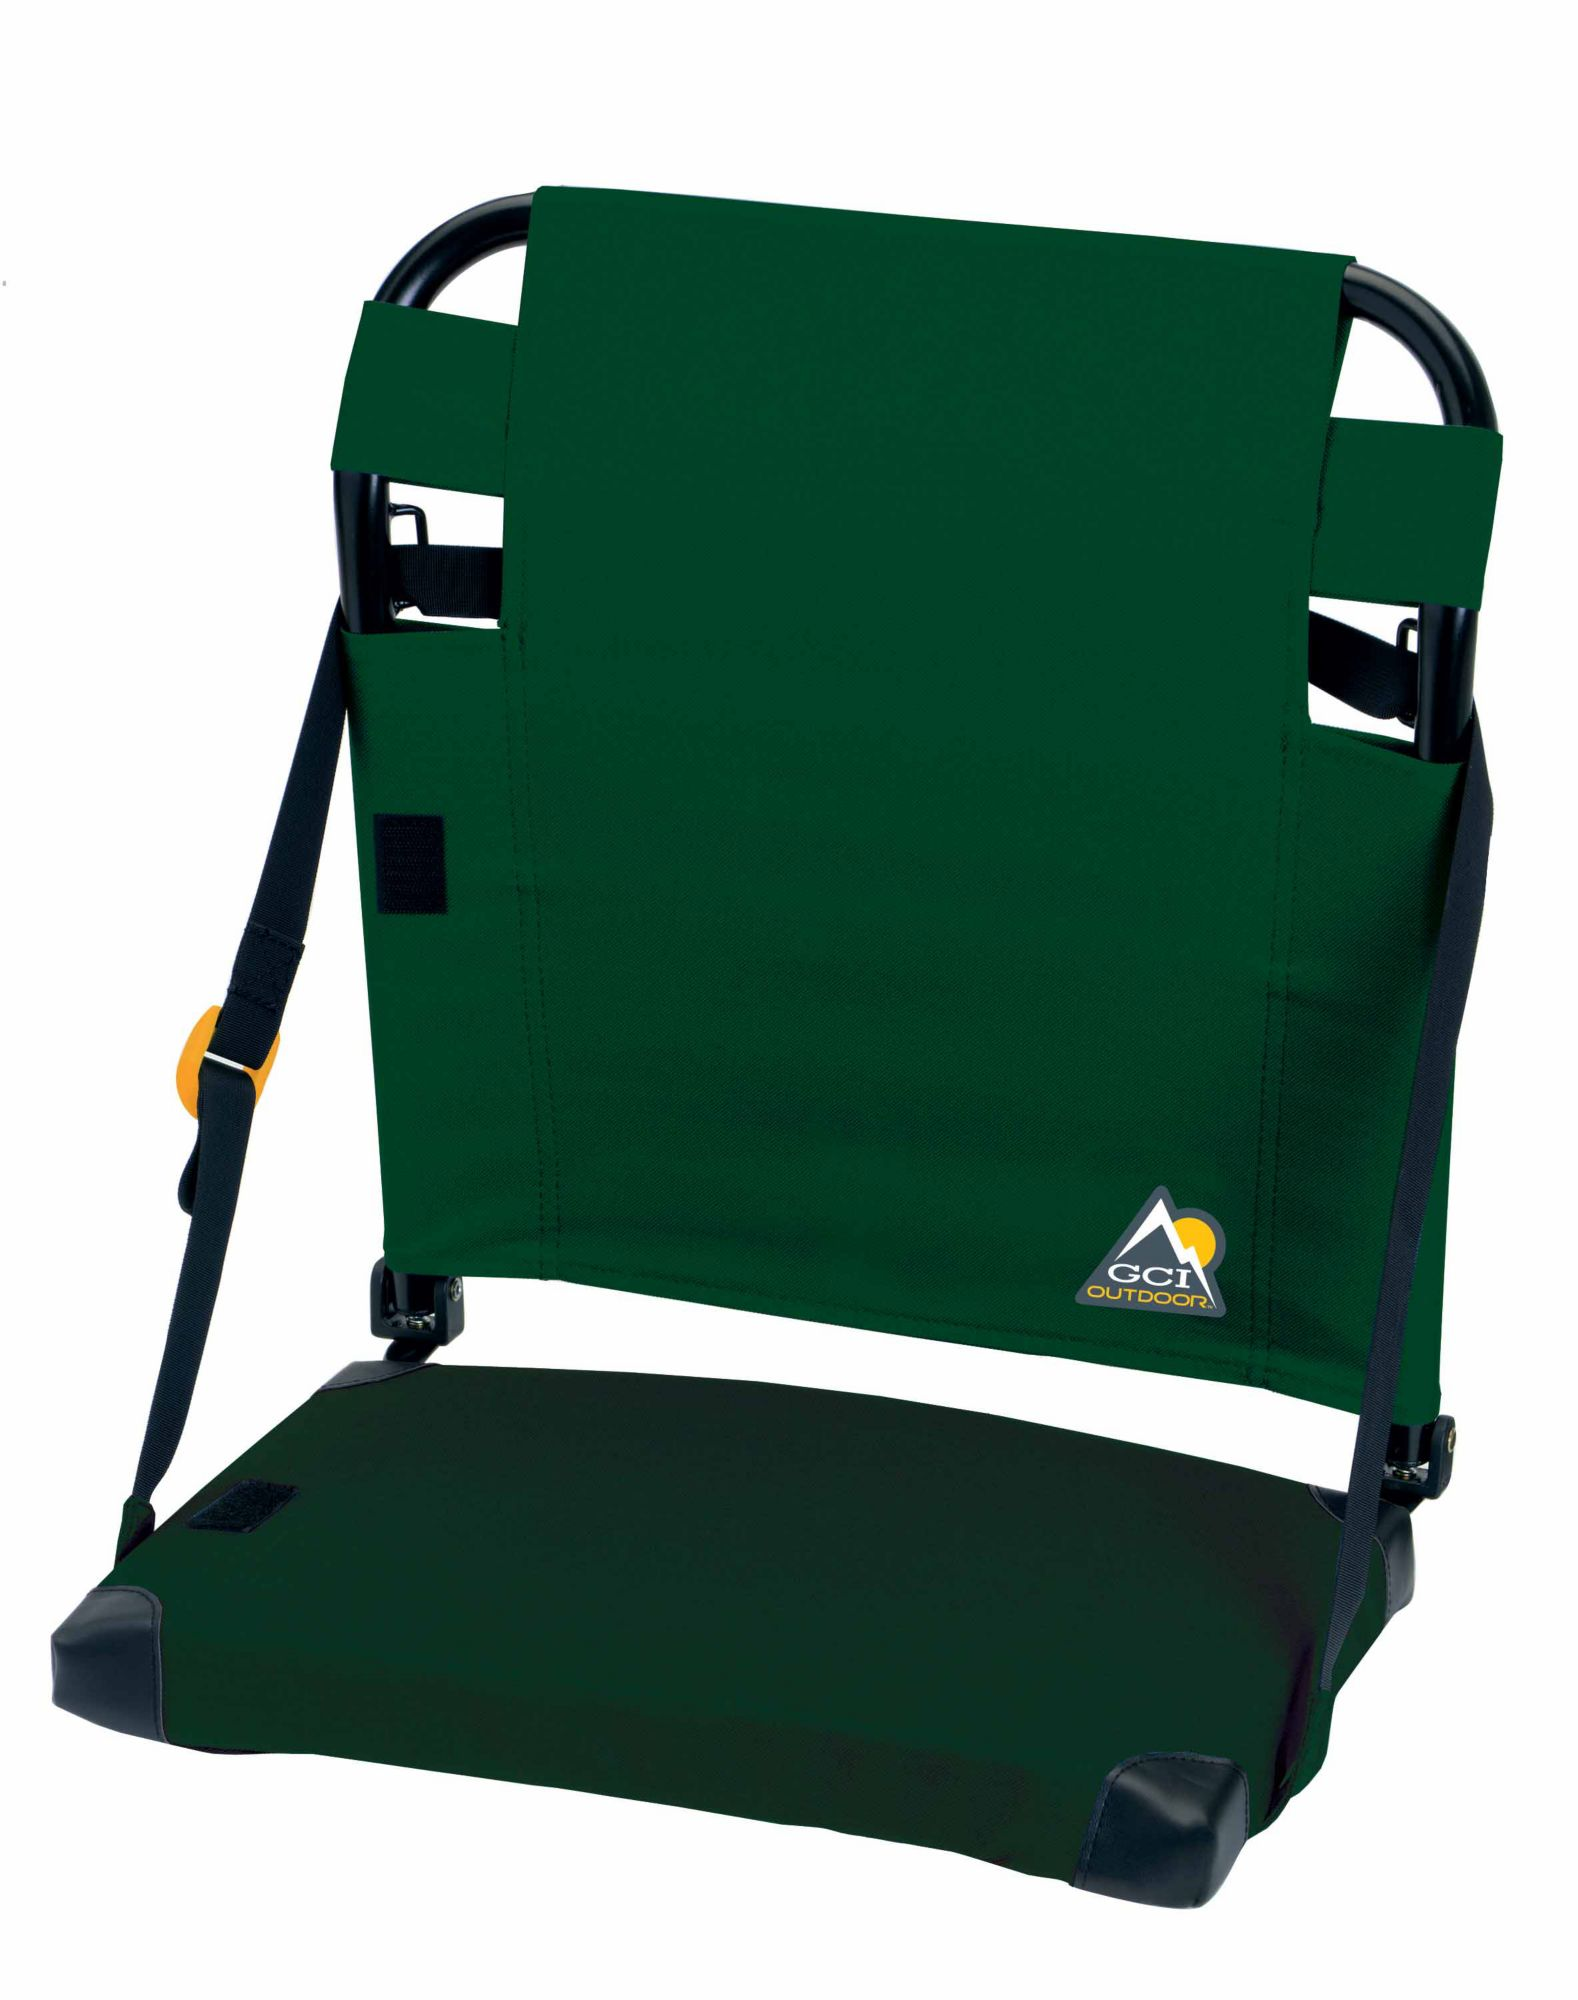 GCI Outdoor Bleacher Back Stadium Seat